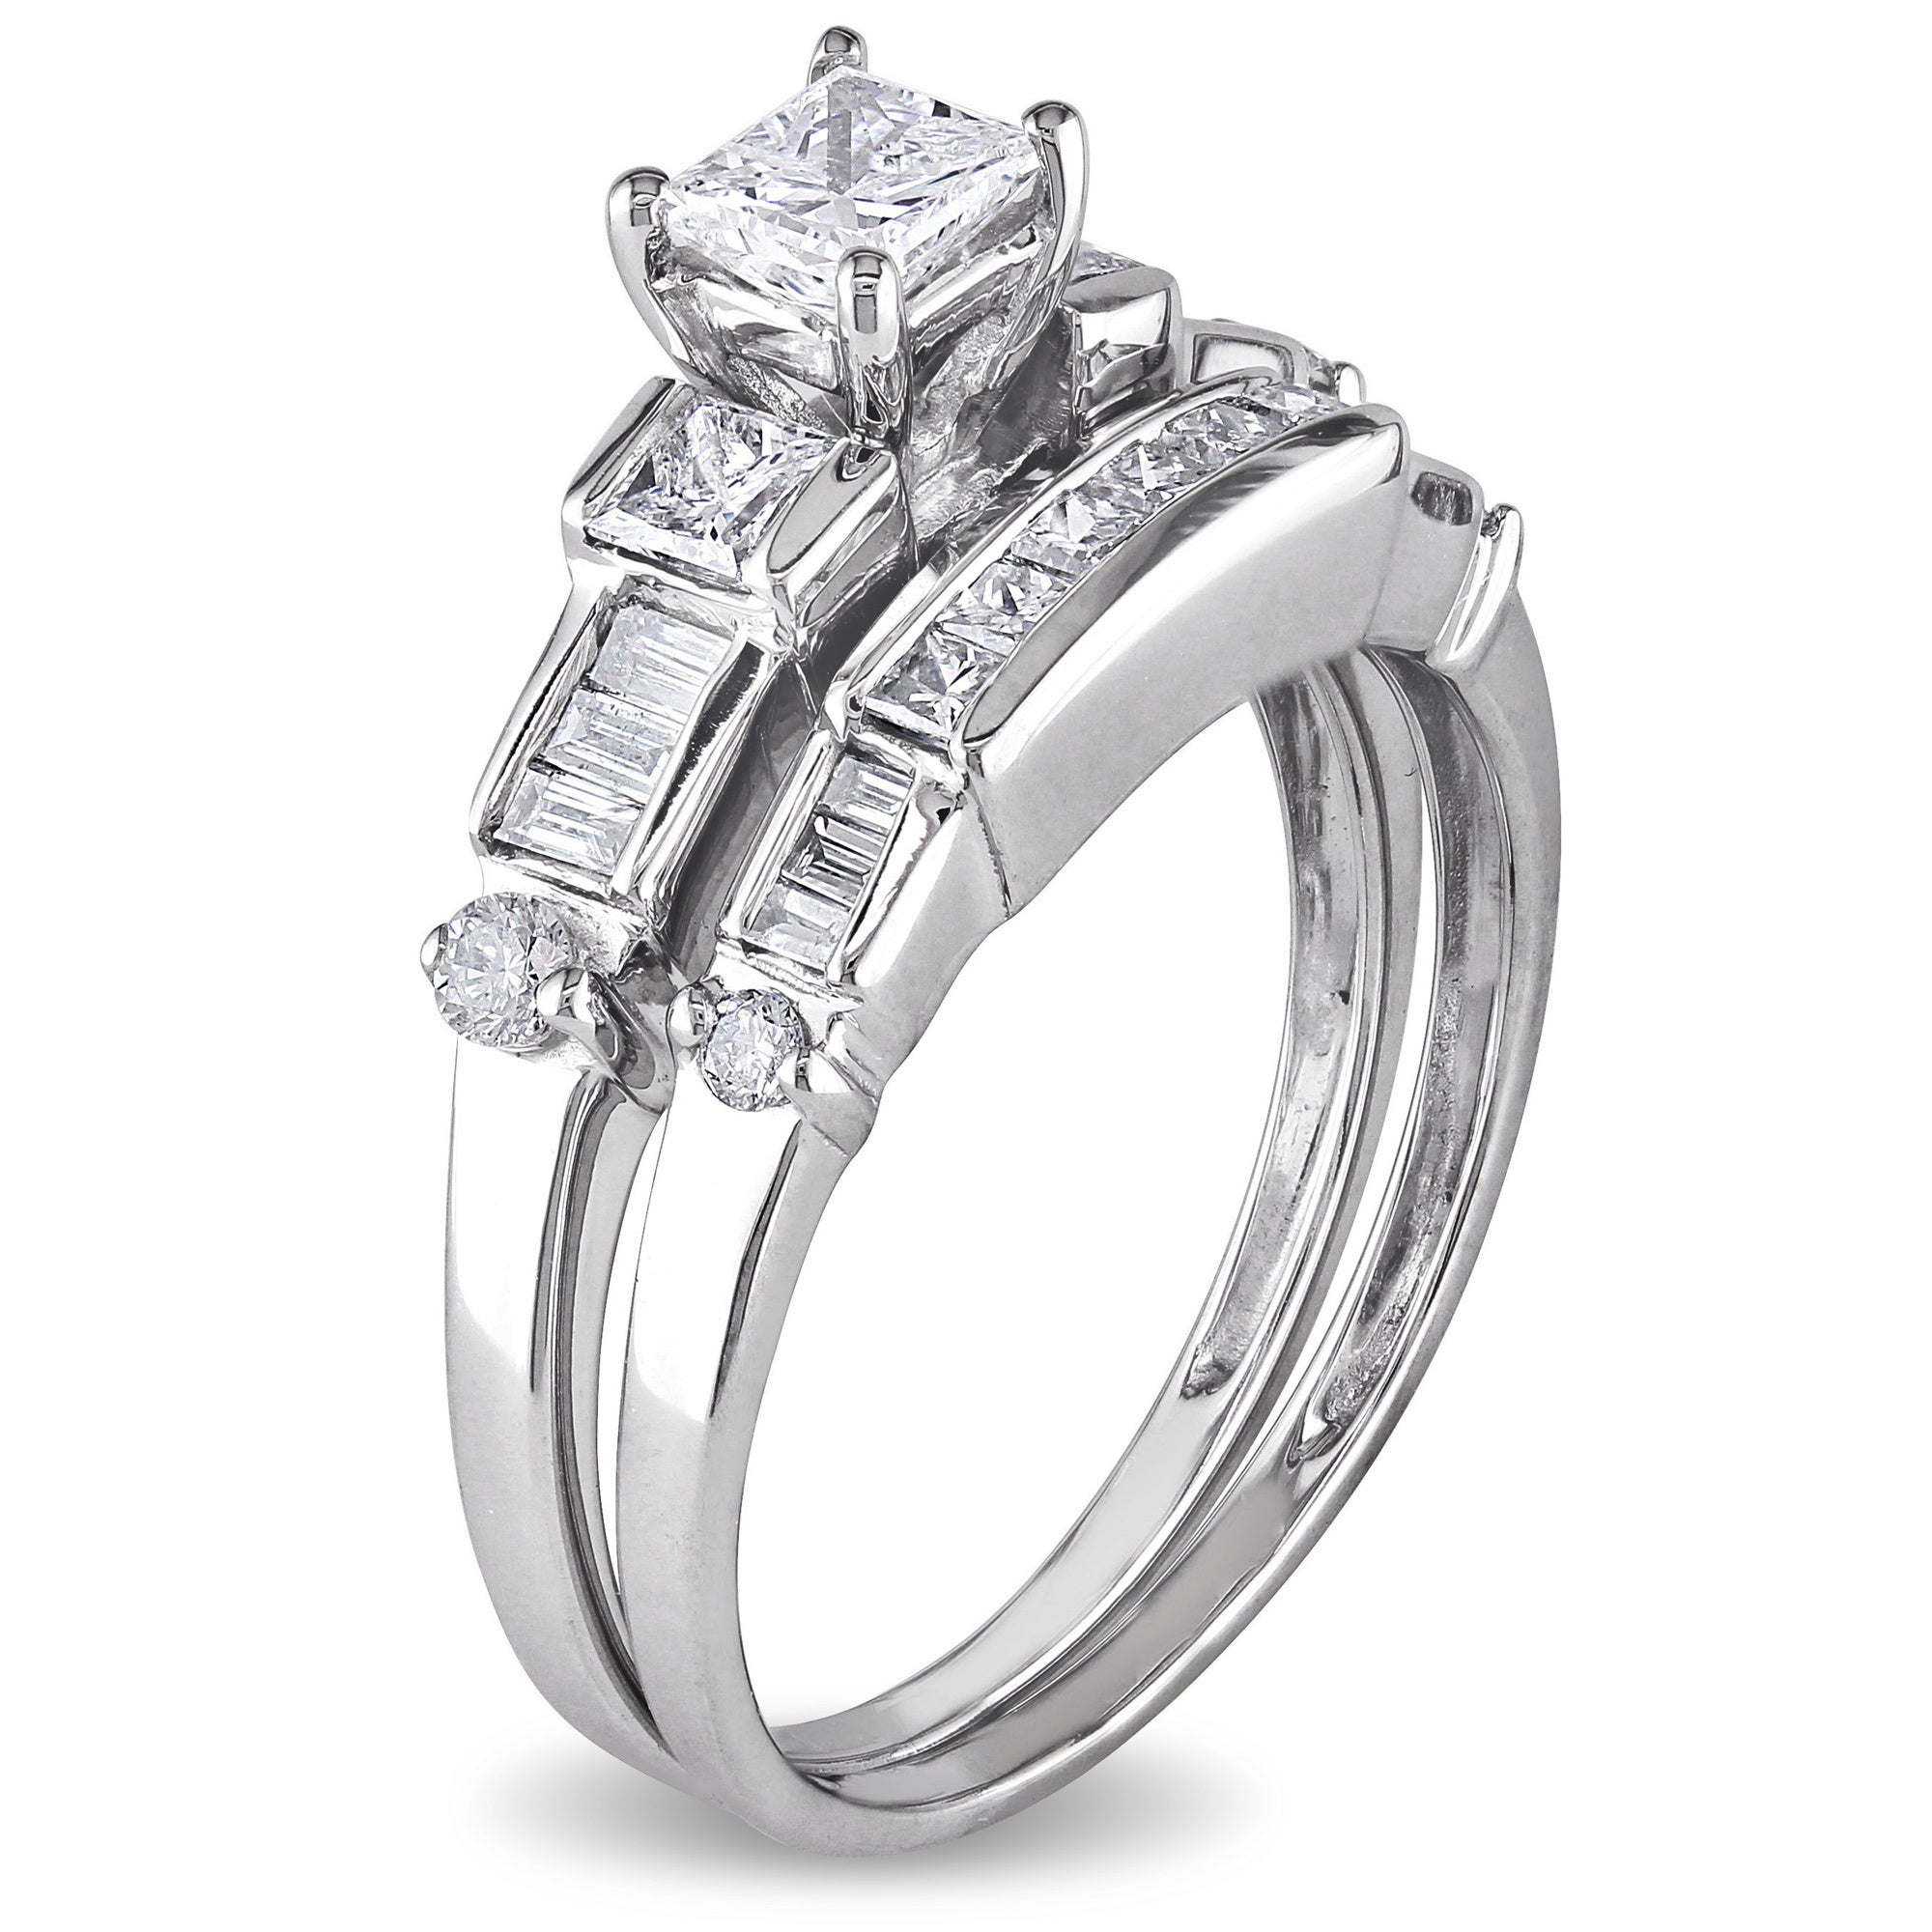 rings pdp ring gold buymogul white engagement cut online mogul princess main at diamond l wedding rsp